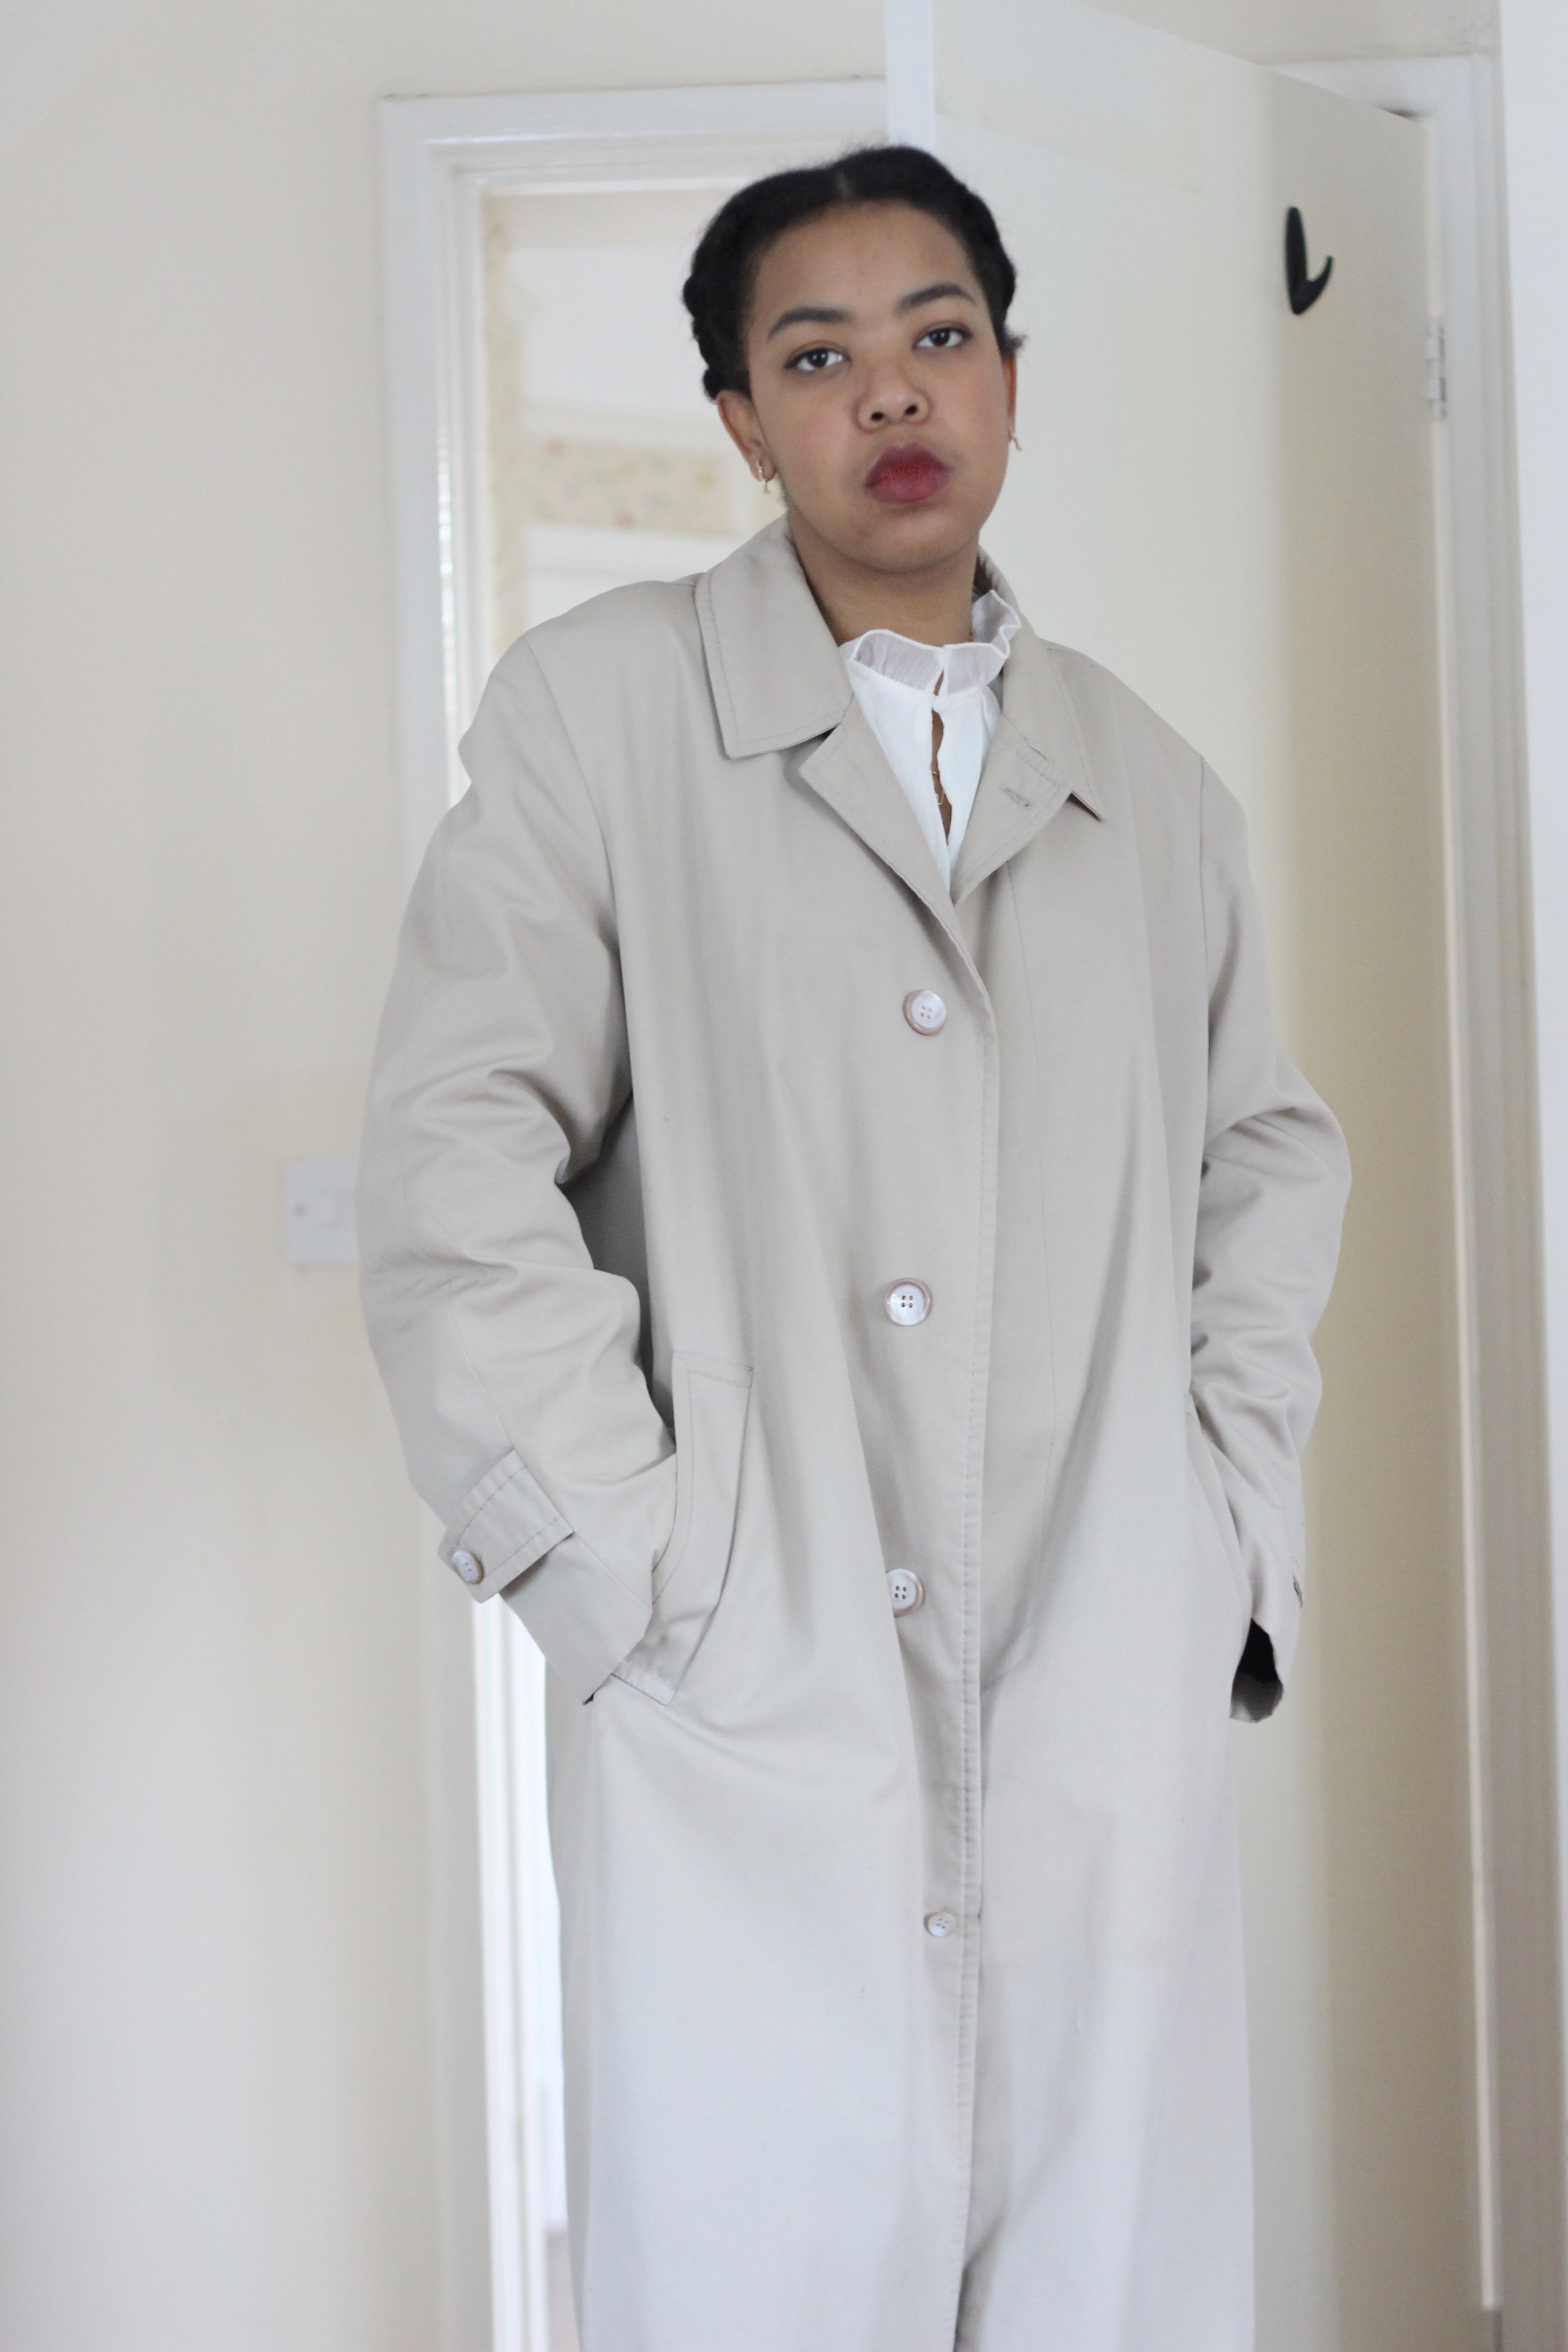 A Classic Trench - Vintage St. Martin's trench, £0 from clothes swap event